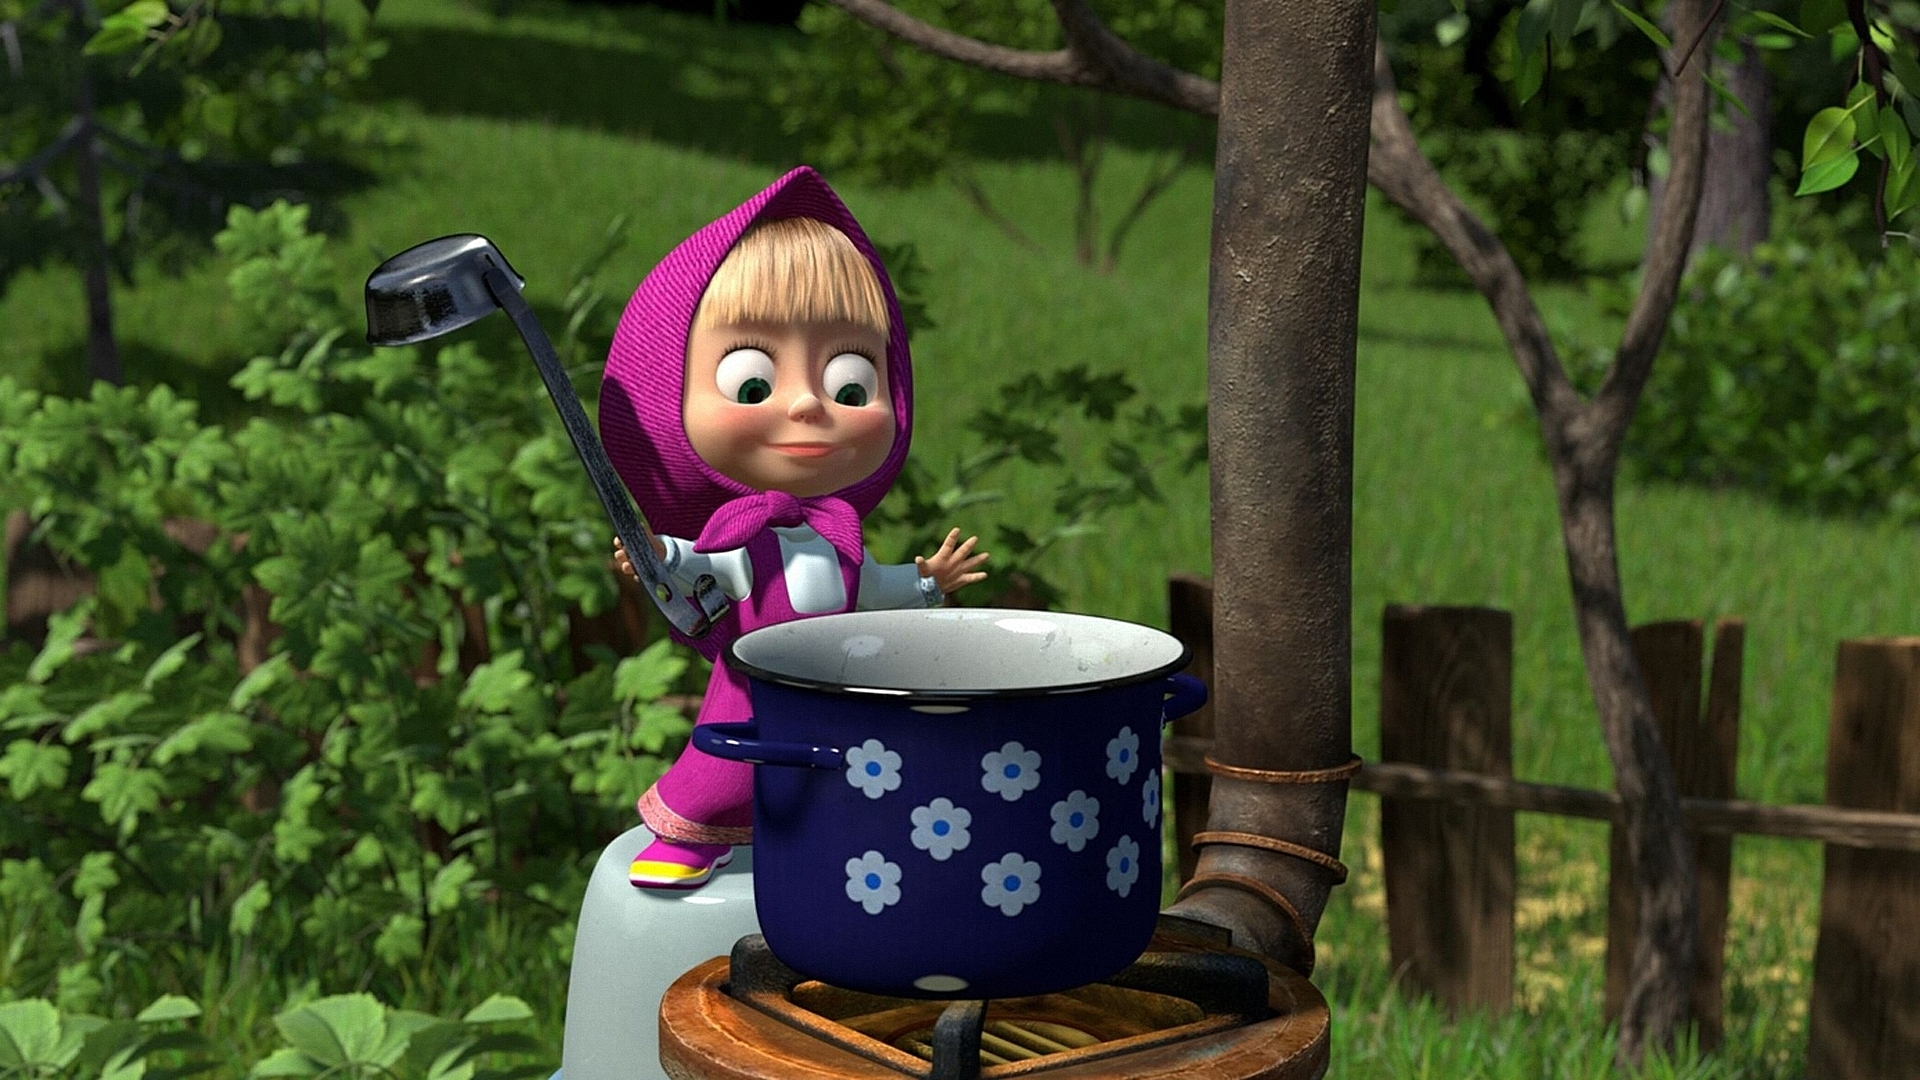 Mary with a saucepan